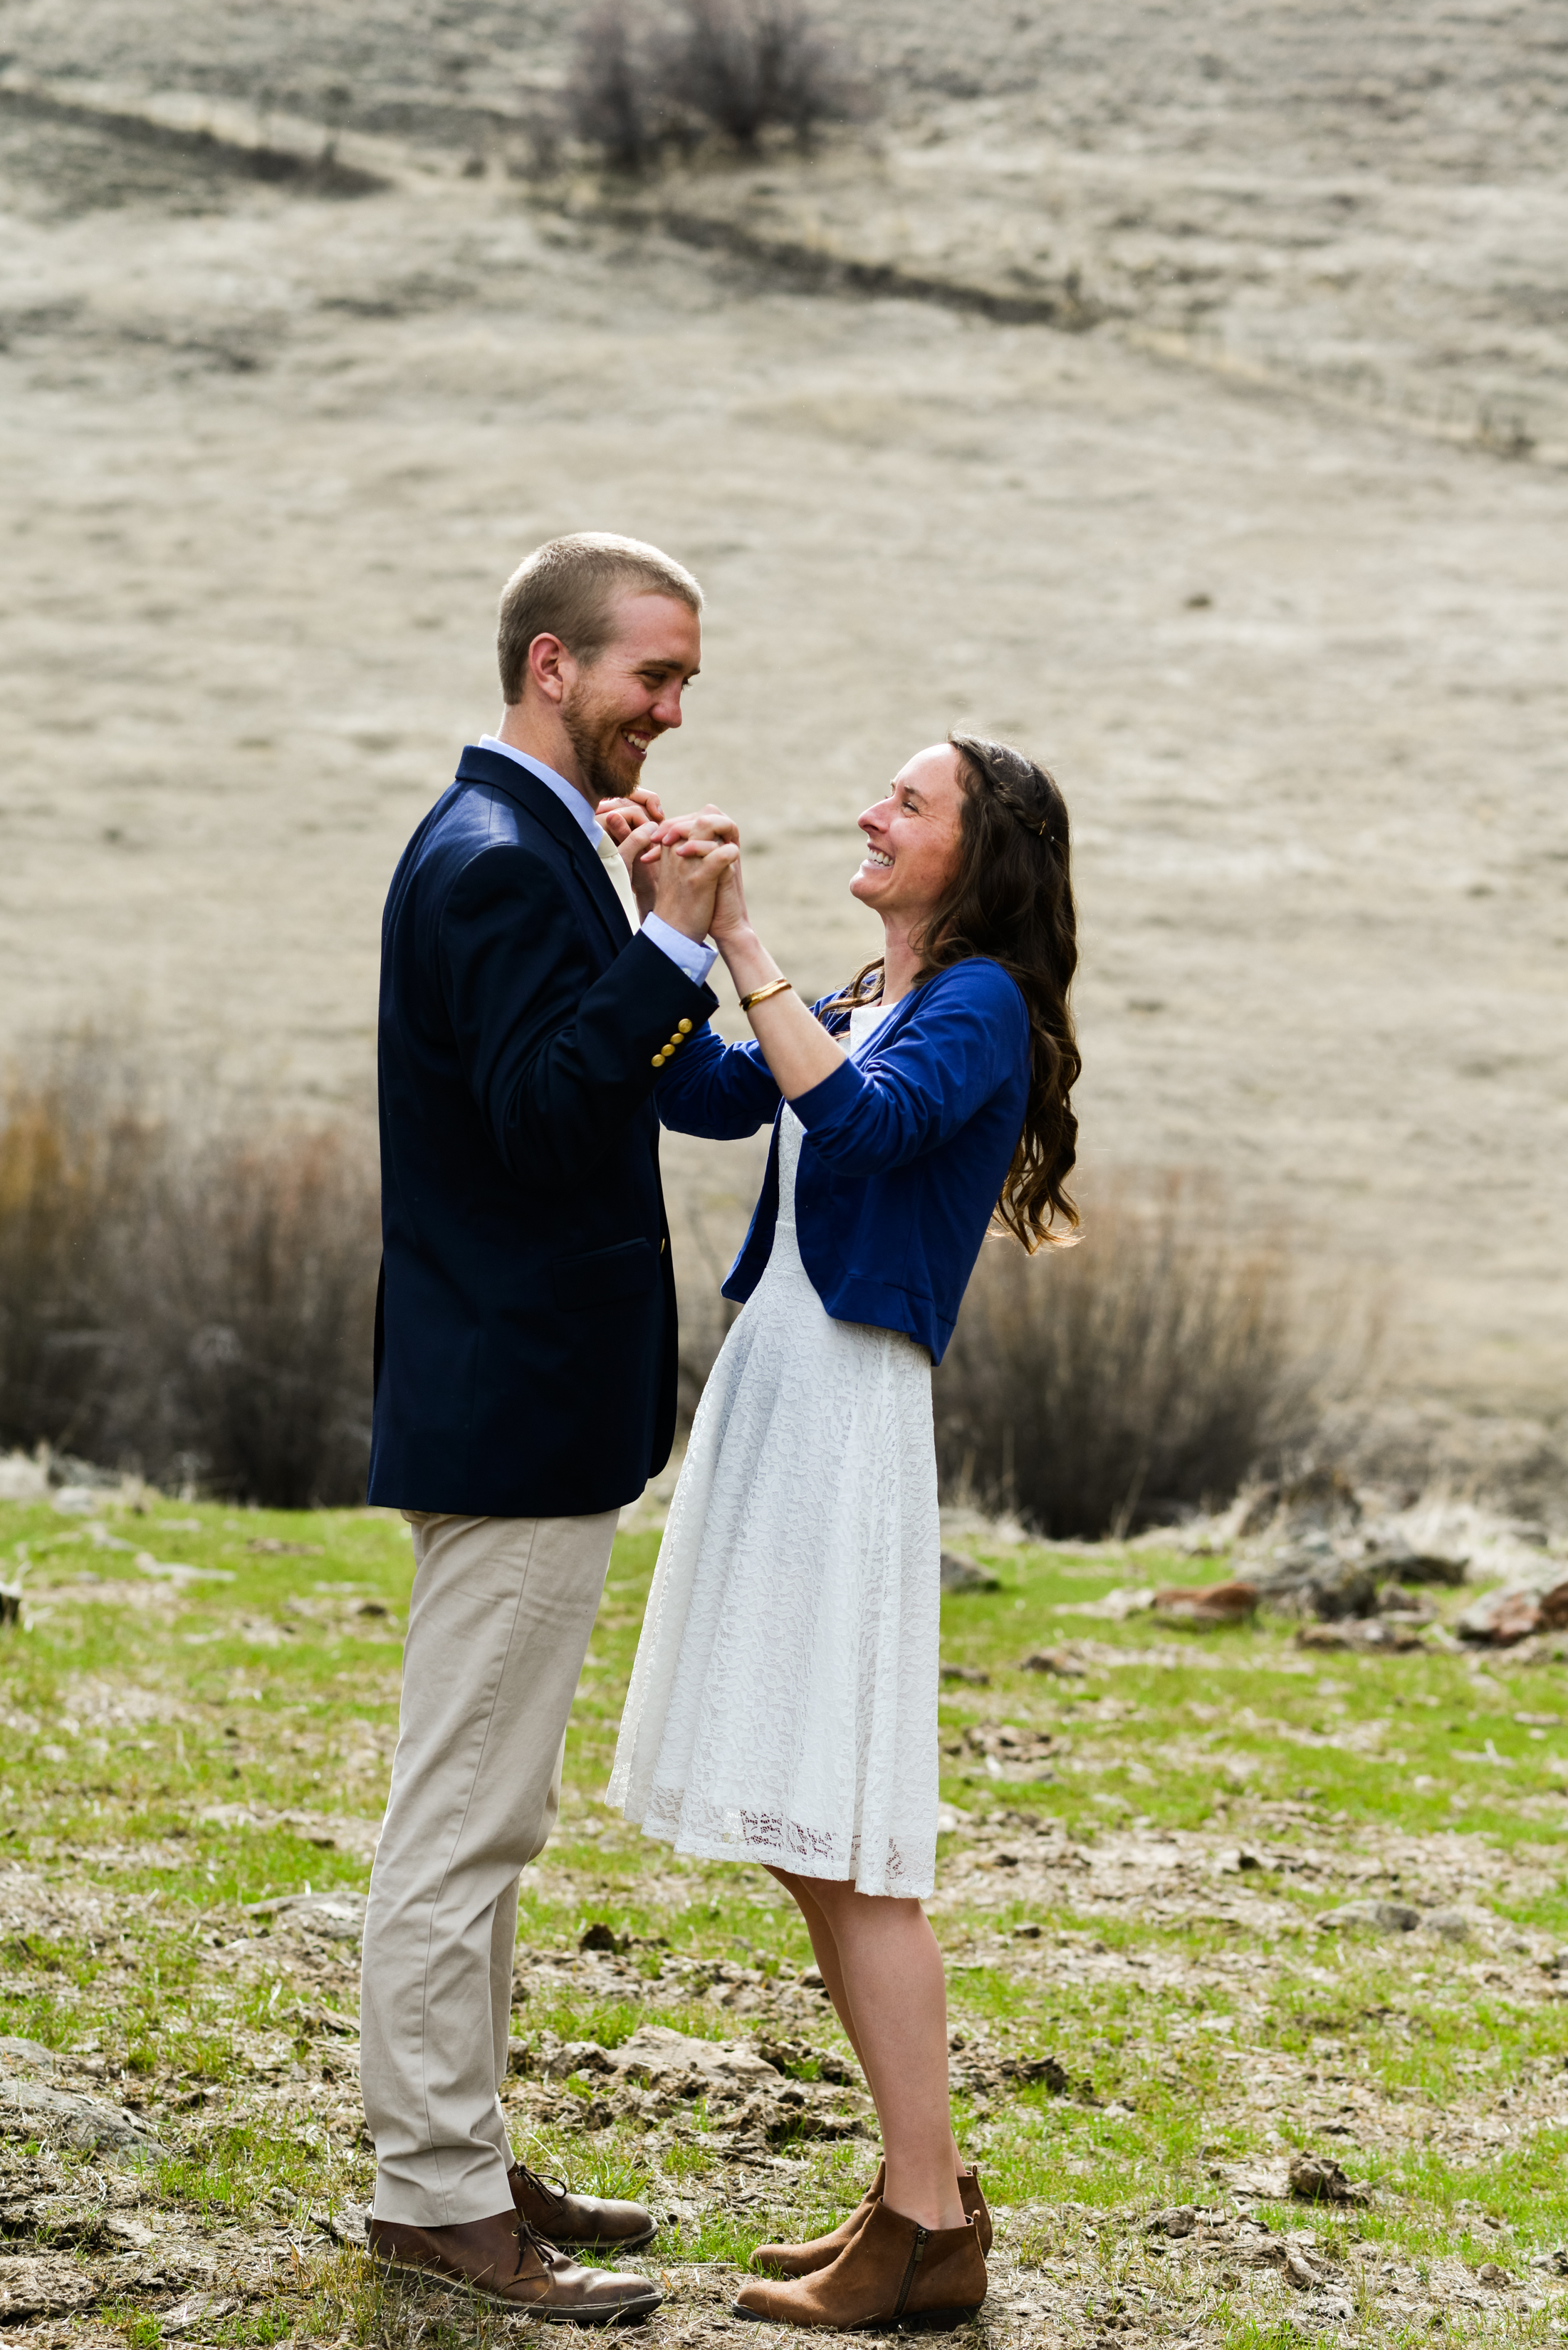 Ryan Melanie Elopement Enterprse Oregon Spring 2019 Please Credit Talia Jean Galvin (114 of 220).jpg